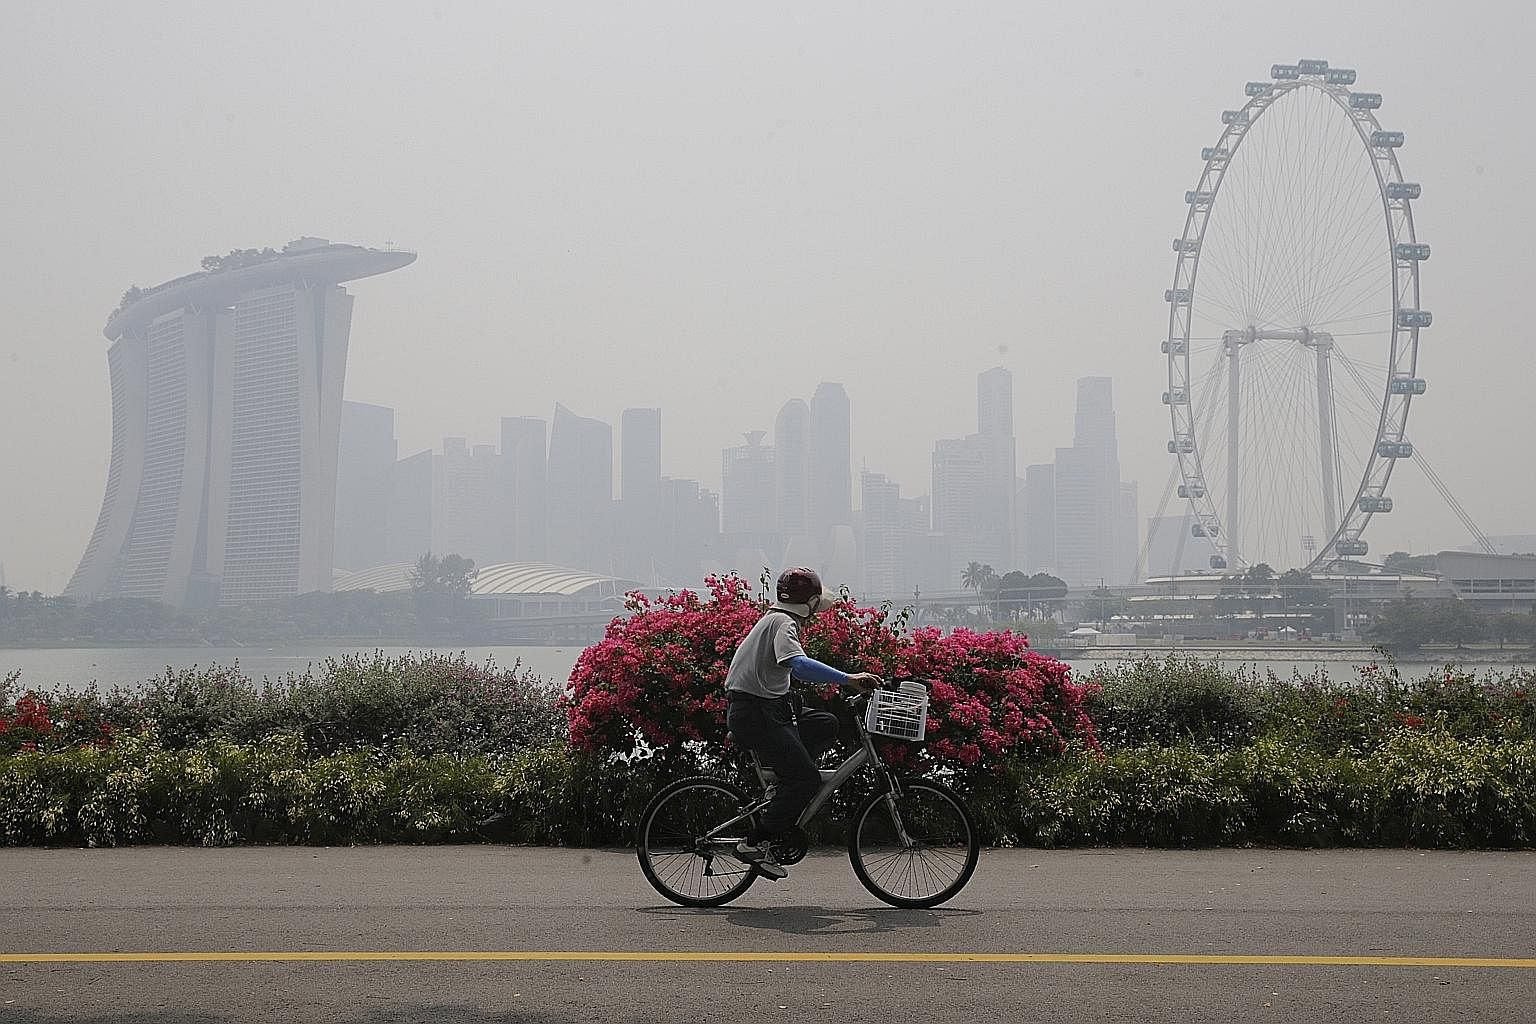 Haze shrouding the Marina Bay area last October. Singapore has been hit badly by haze over the years and recognises that it has a part to play in fighting the problem.